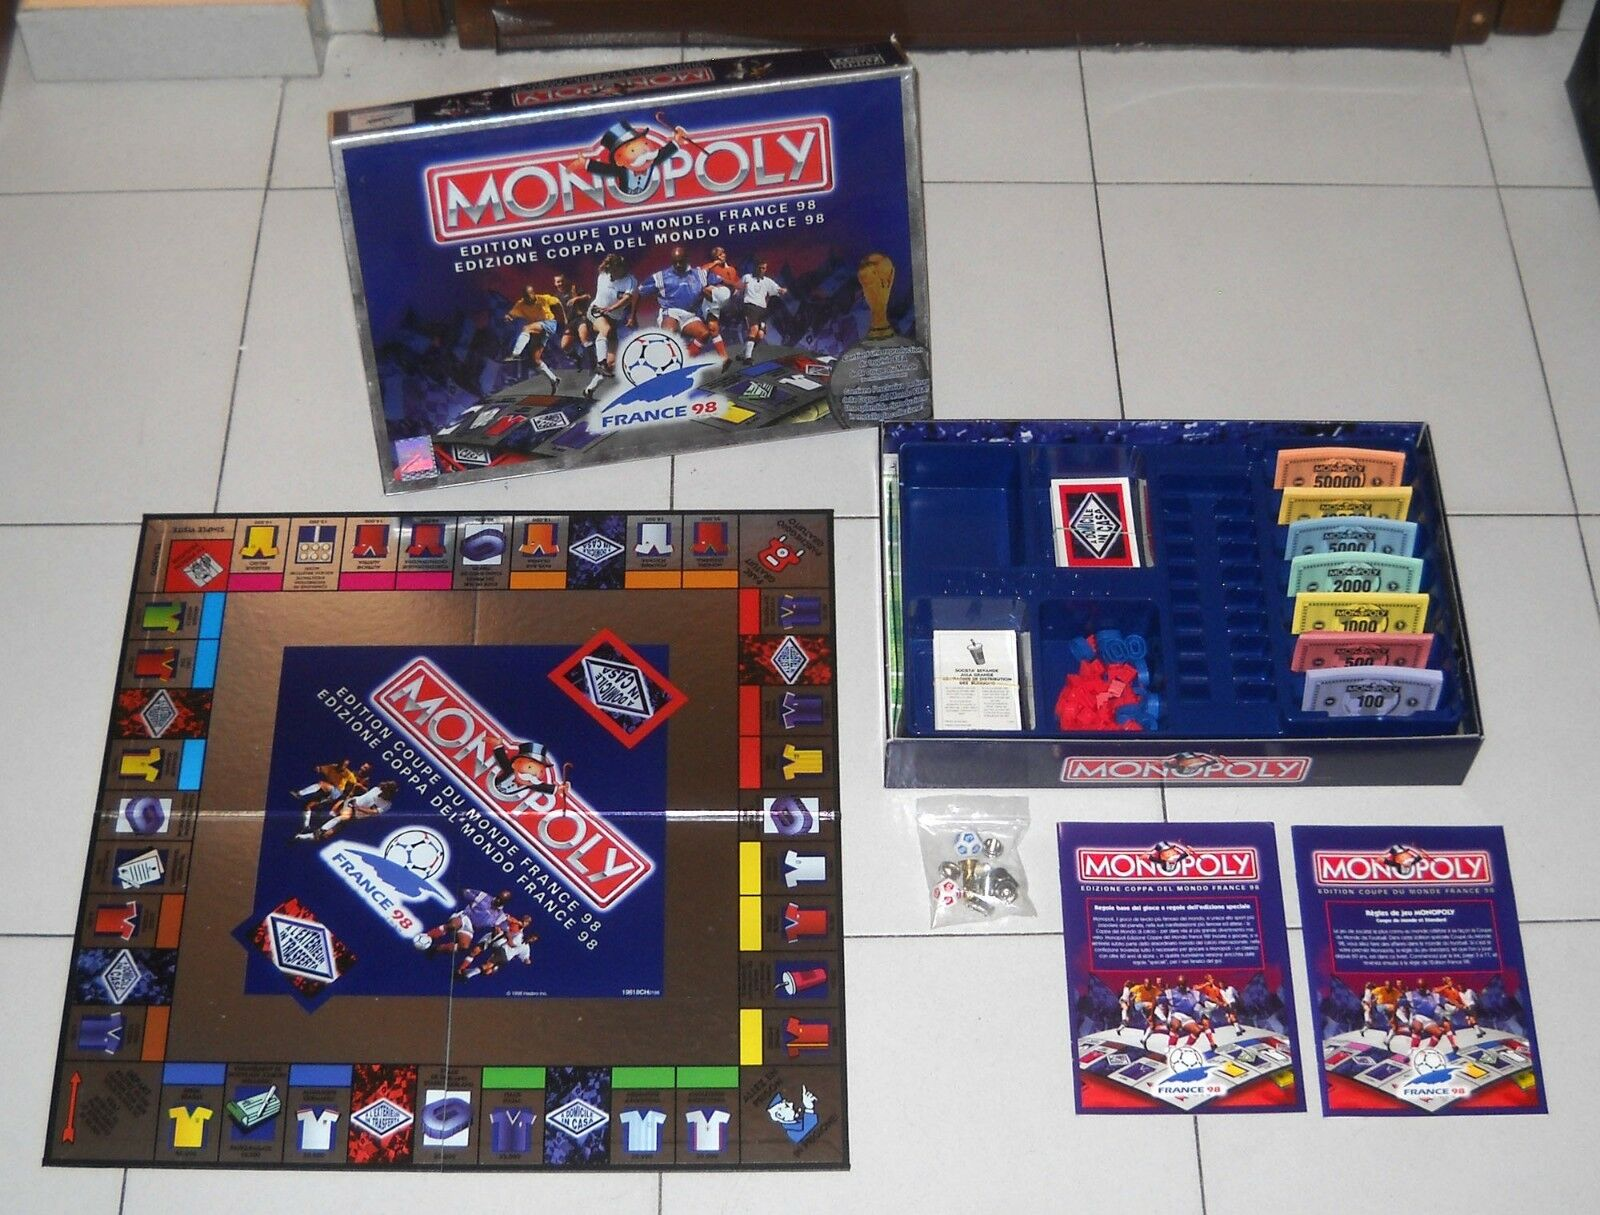 MONOPOLY FRANCE 98 edition World cup 1998 Monopoli Fifa World cup